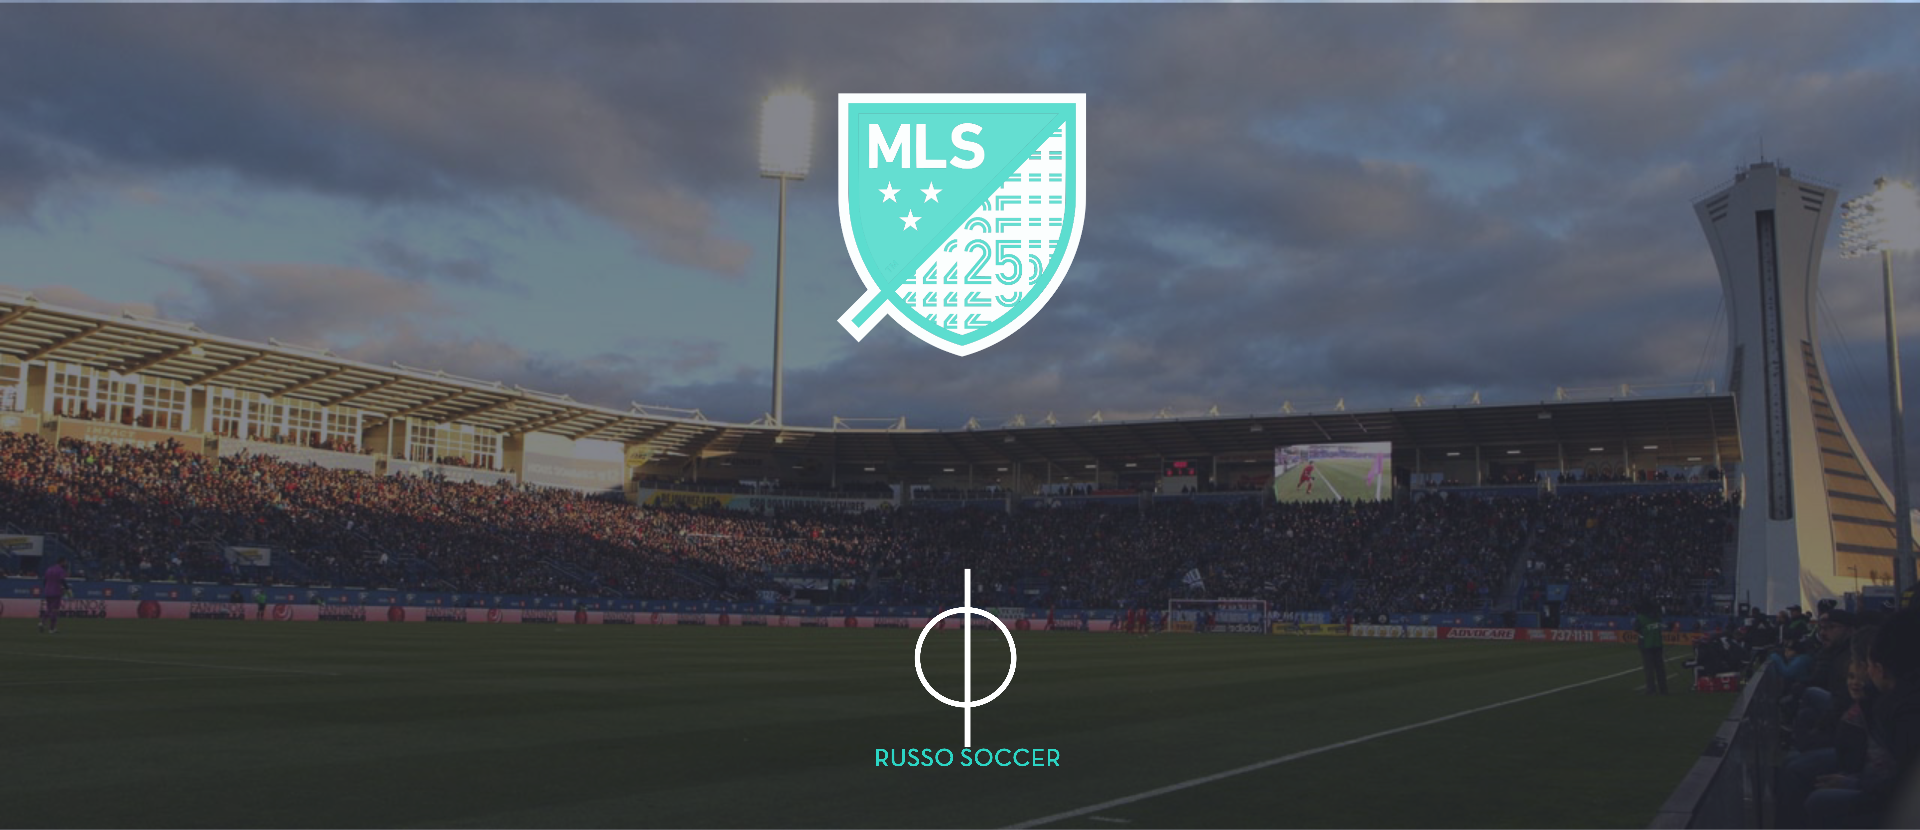 Mls Disney Calendar Released League Tweaks Qualification For Knockout Phase Russo Law And Soccer